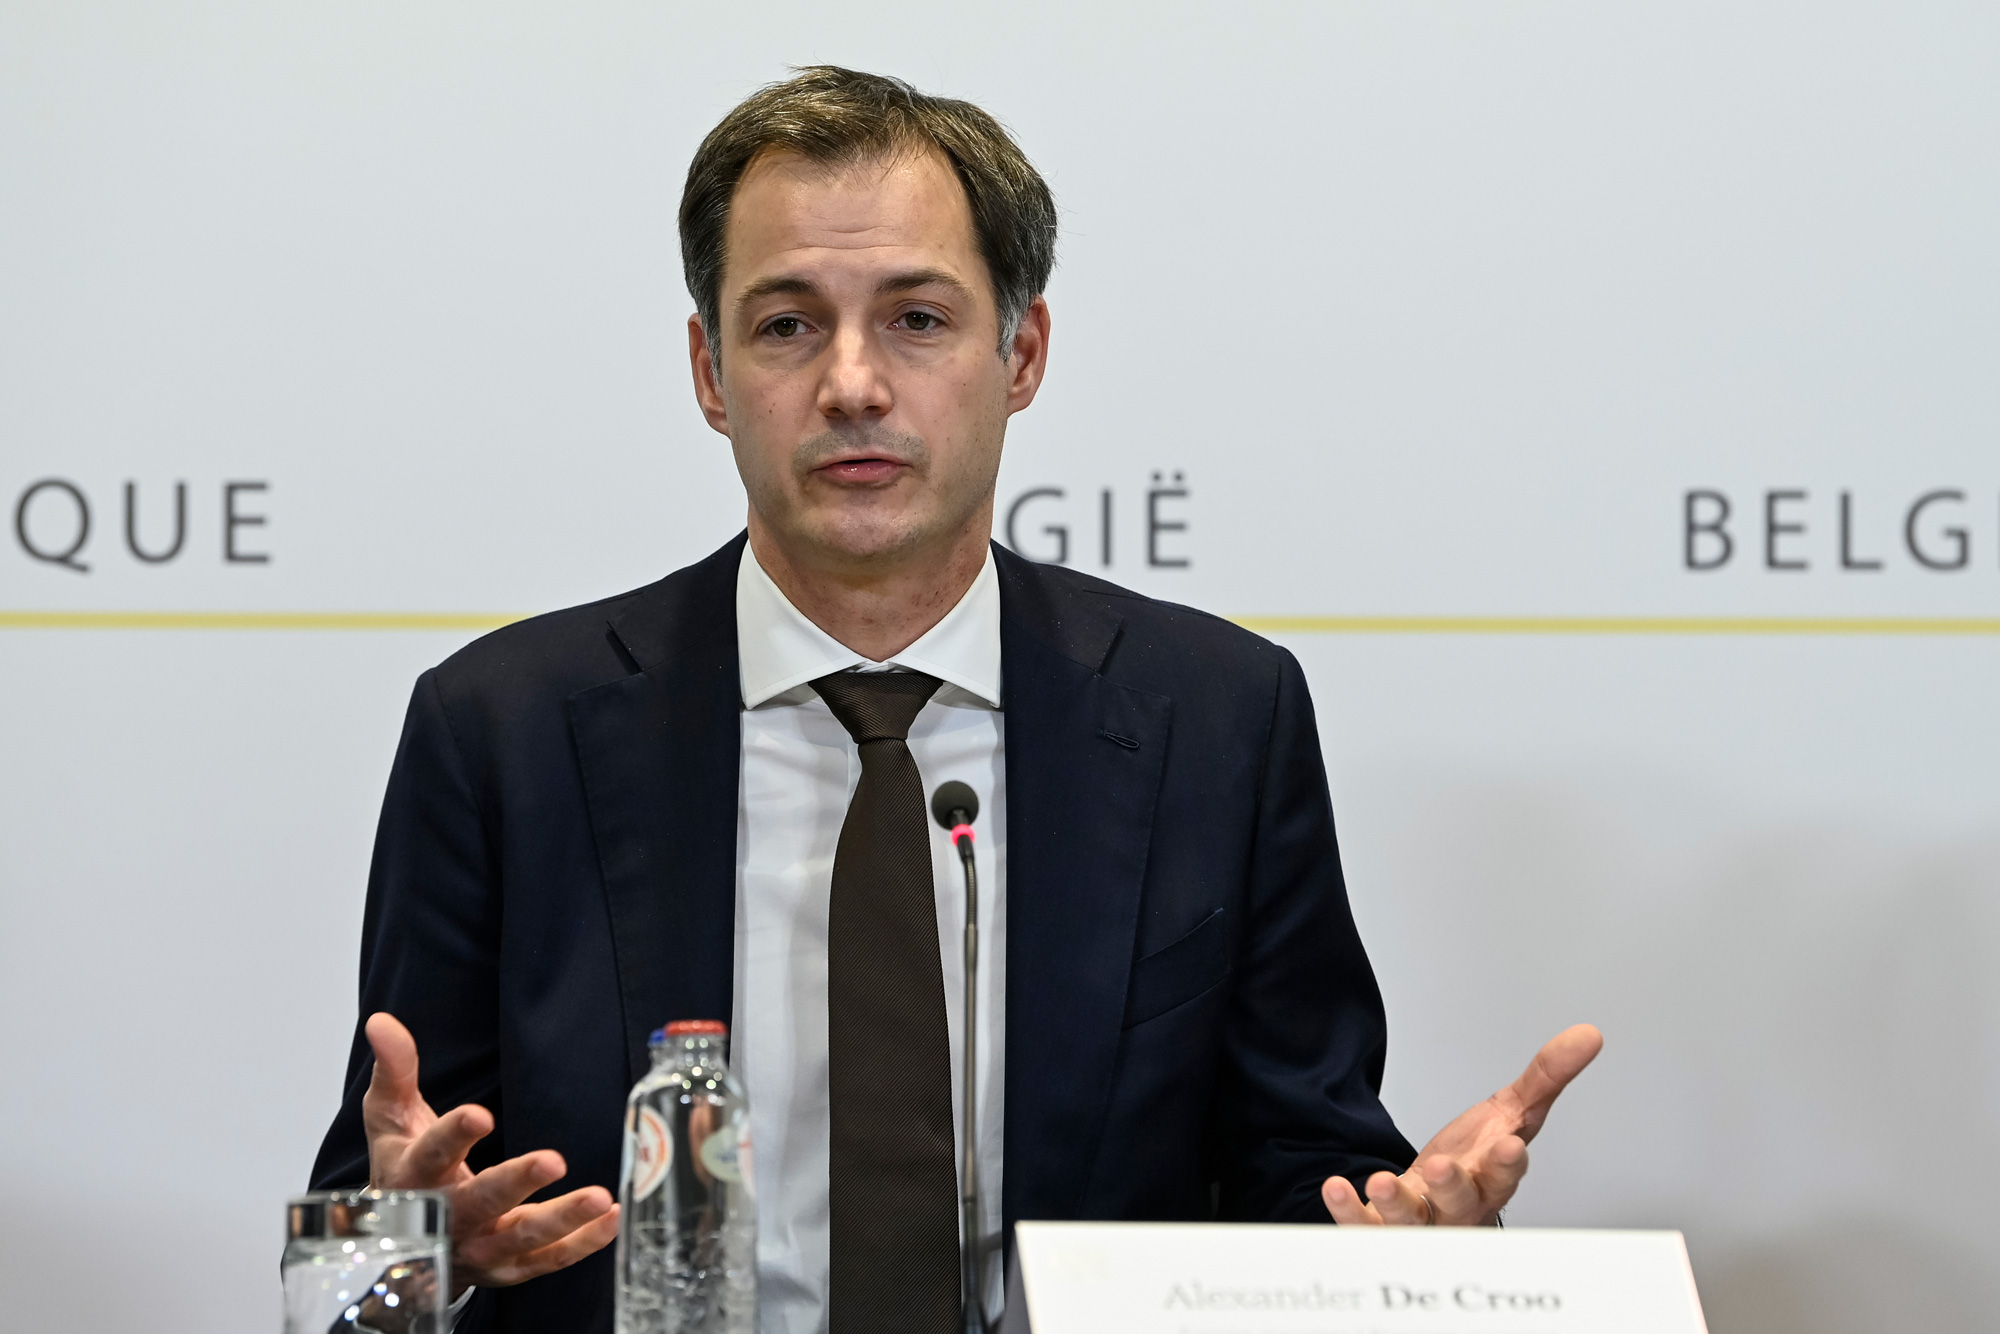 Belgian Prime Minister Alexander De Croo gives a press conference in Brussels on October 30.